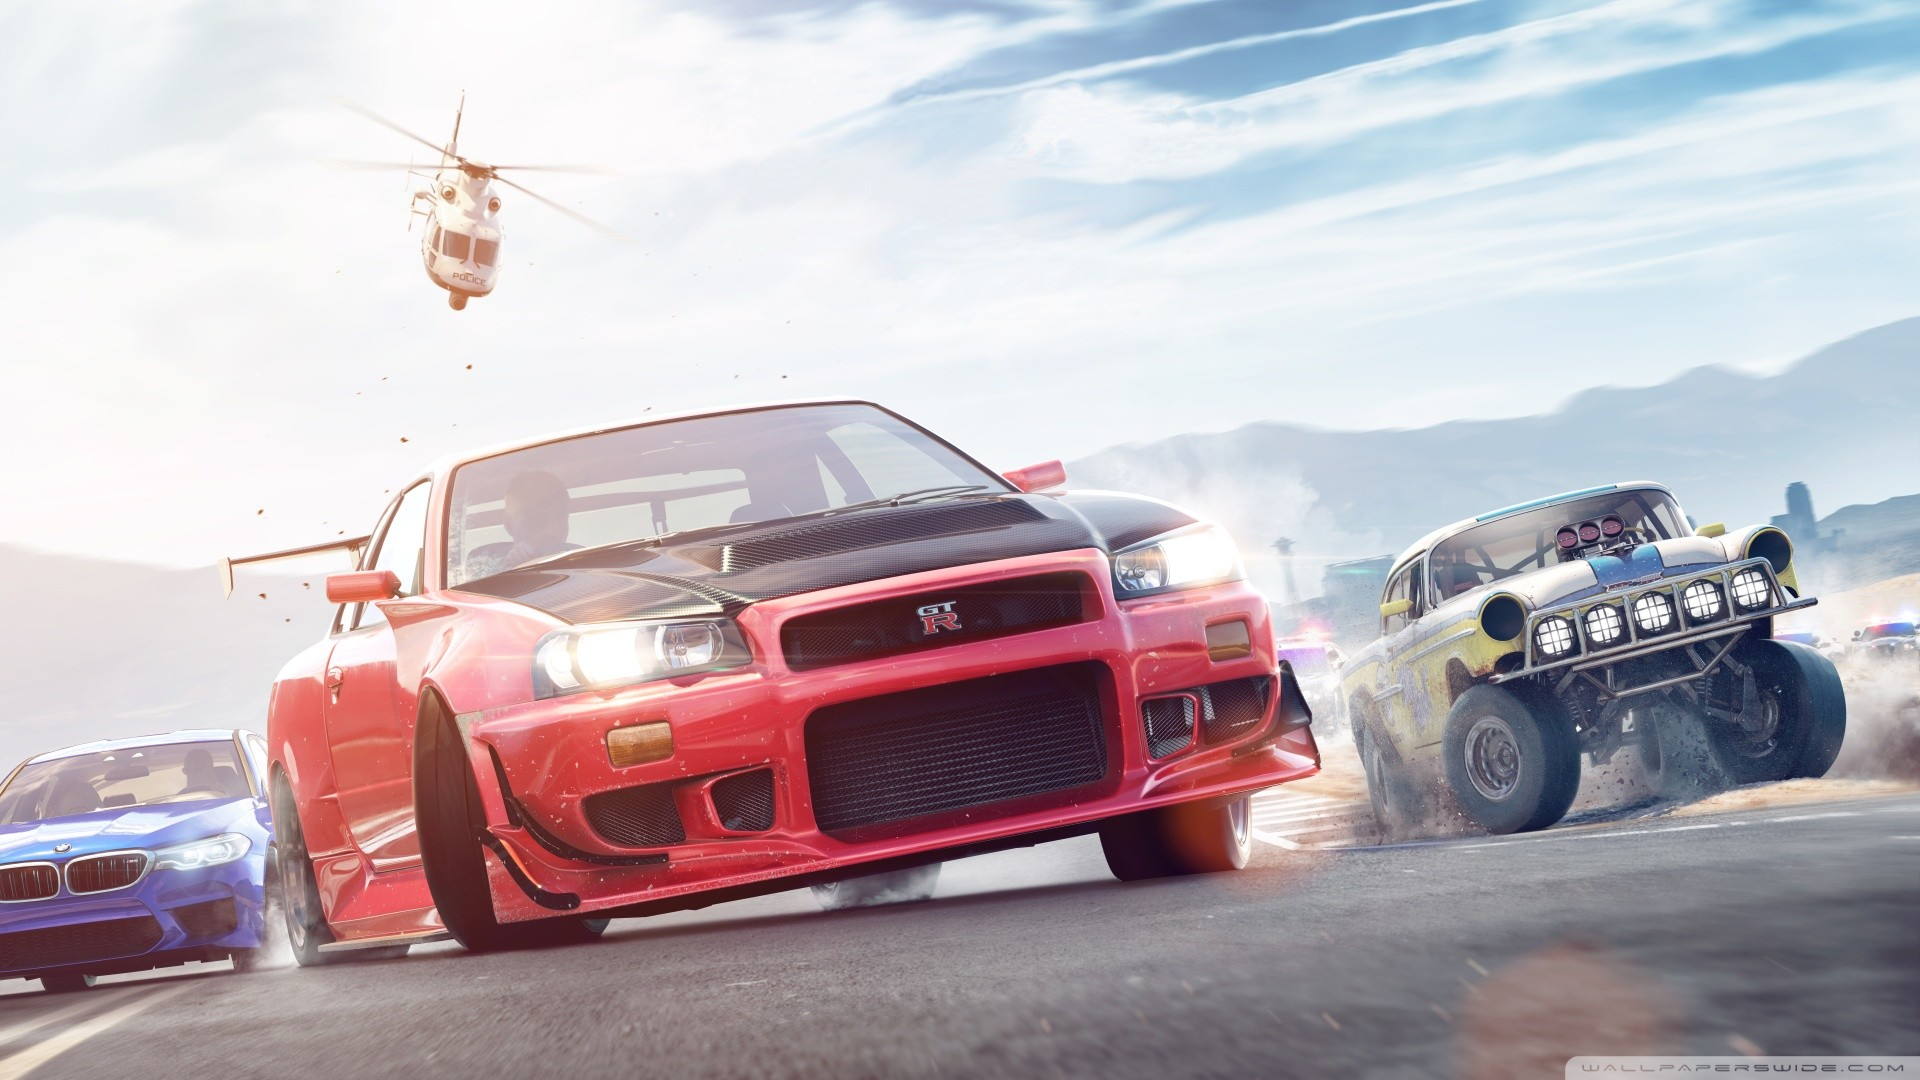 1920x1080 Need For Speed Payback no title FULLHD HD Wide Wallpaper for Widescreen